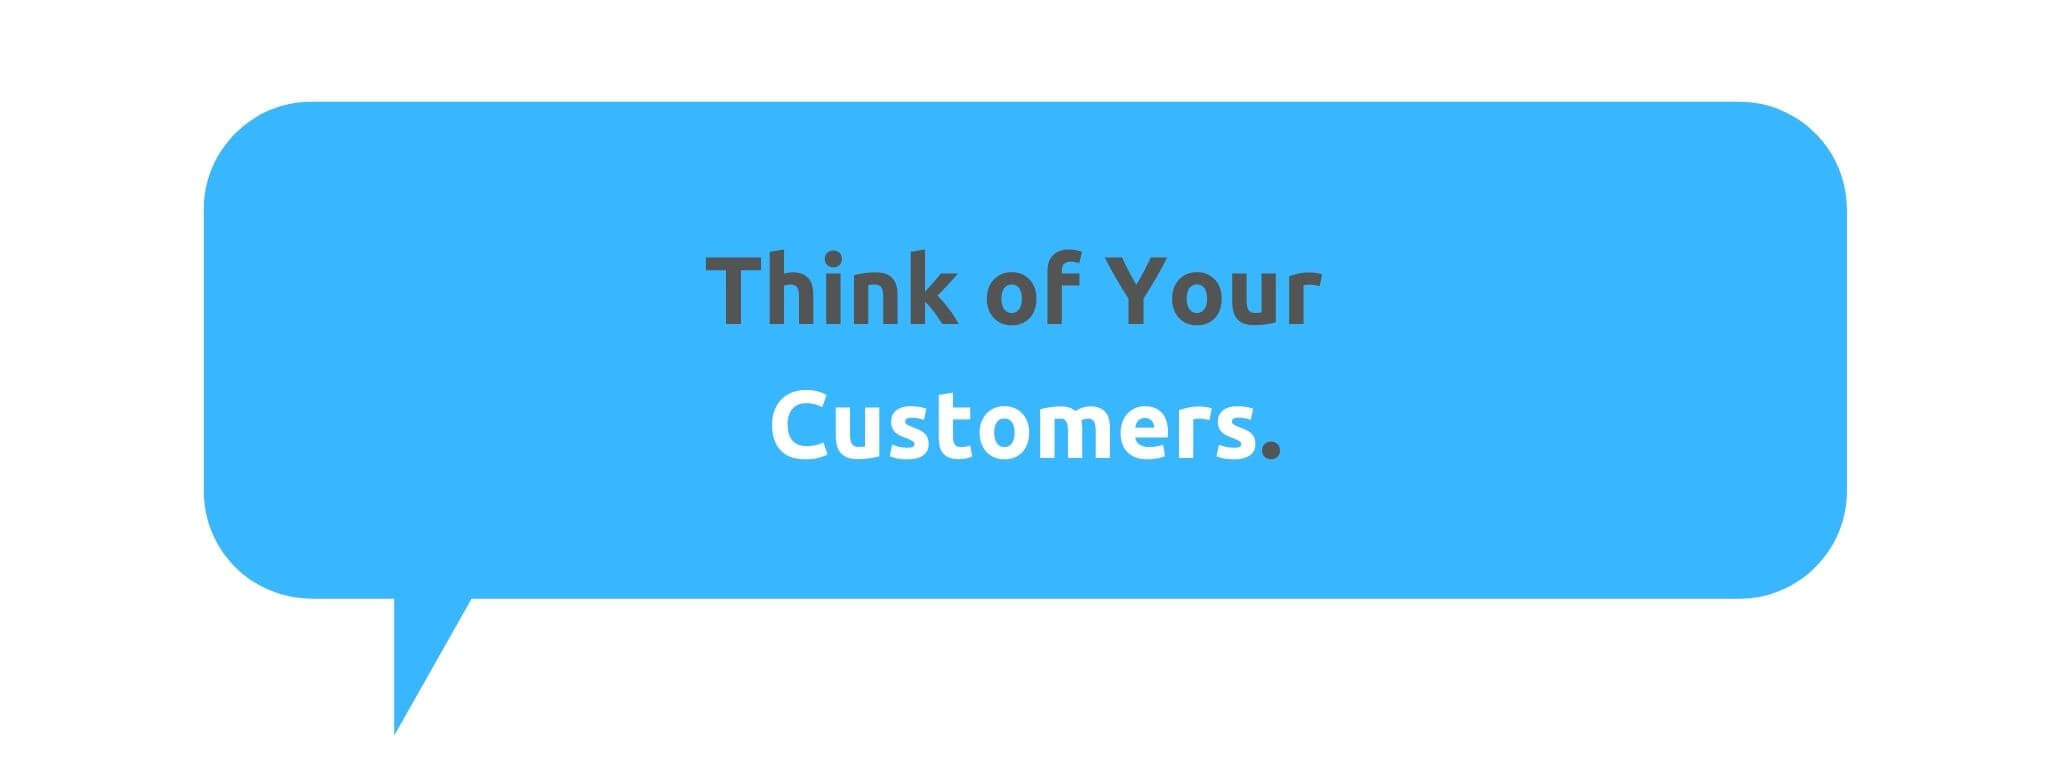 Think of Your Customers - How to Run a Customer-Centric Business - Replyco Helpdesk Software for eCommerce